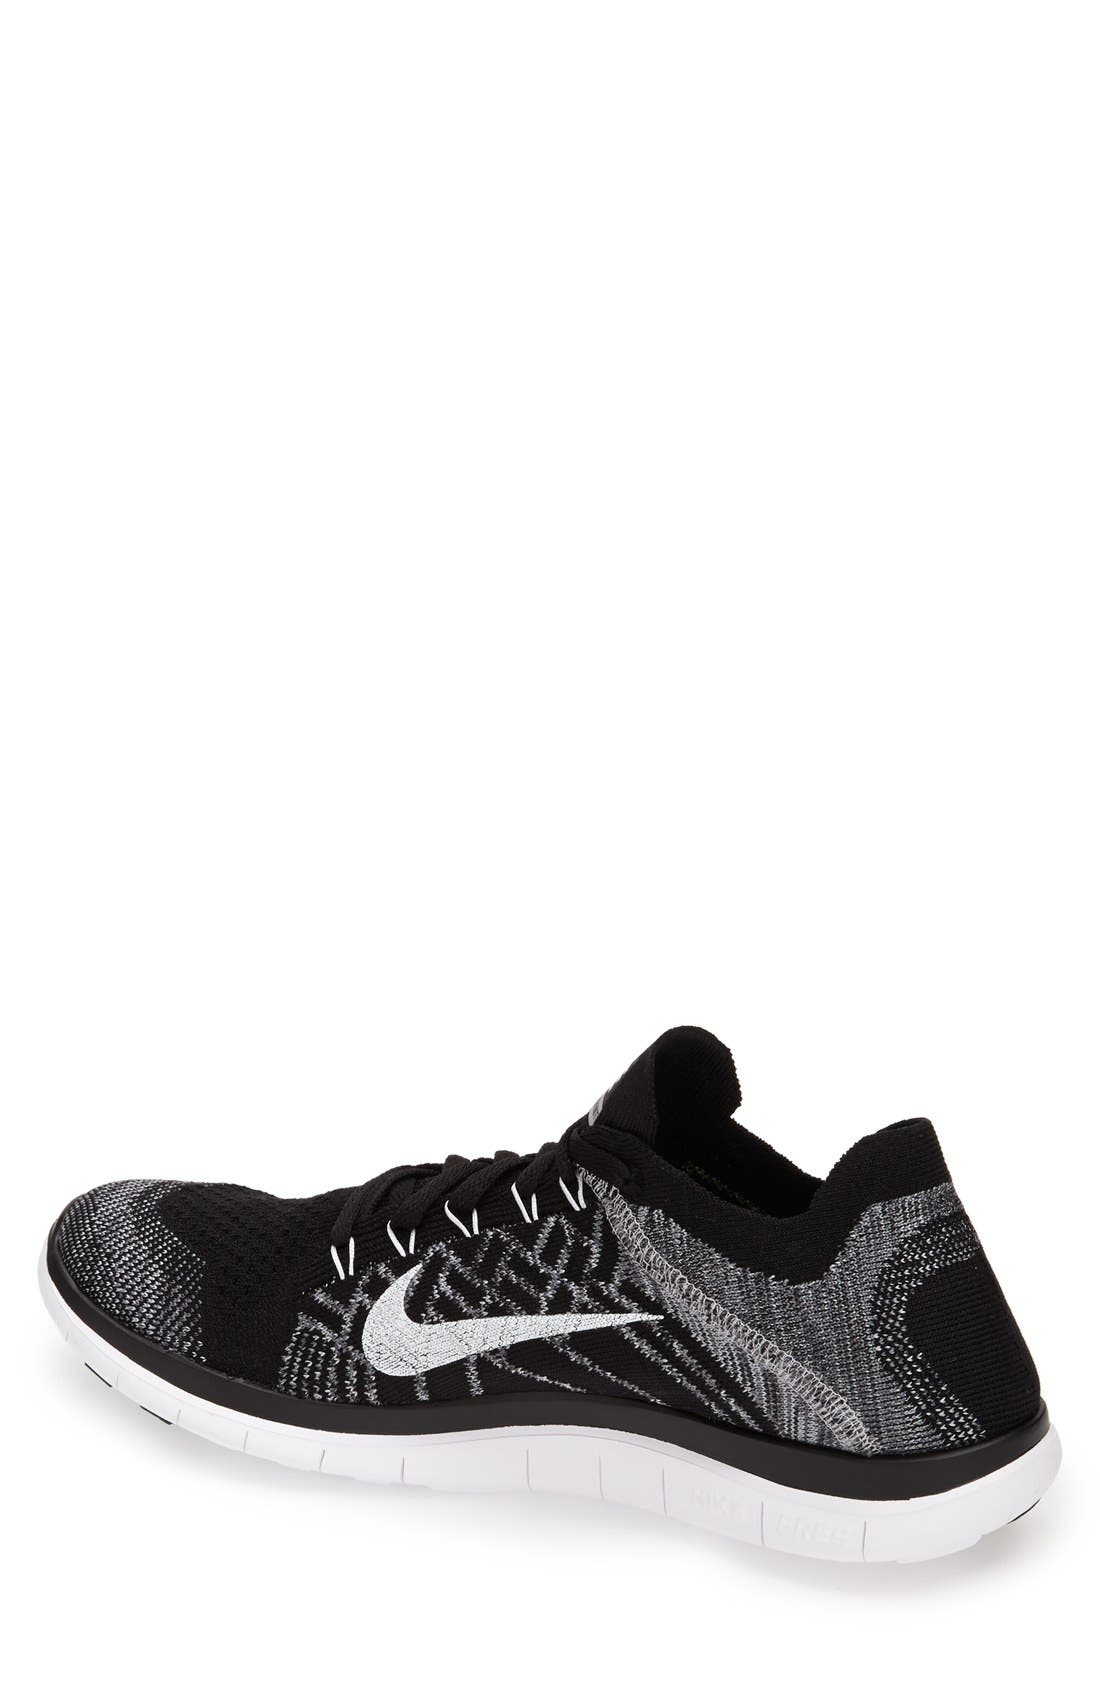 'Free Flyknit 4.0' Running Shoe,                             Alternate thumbnail 2, color,                             001